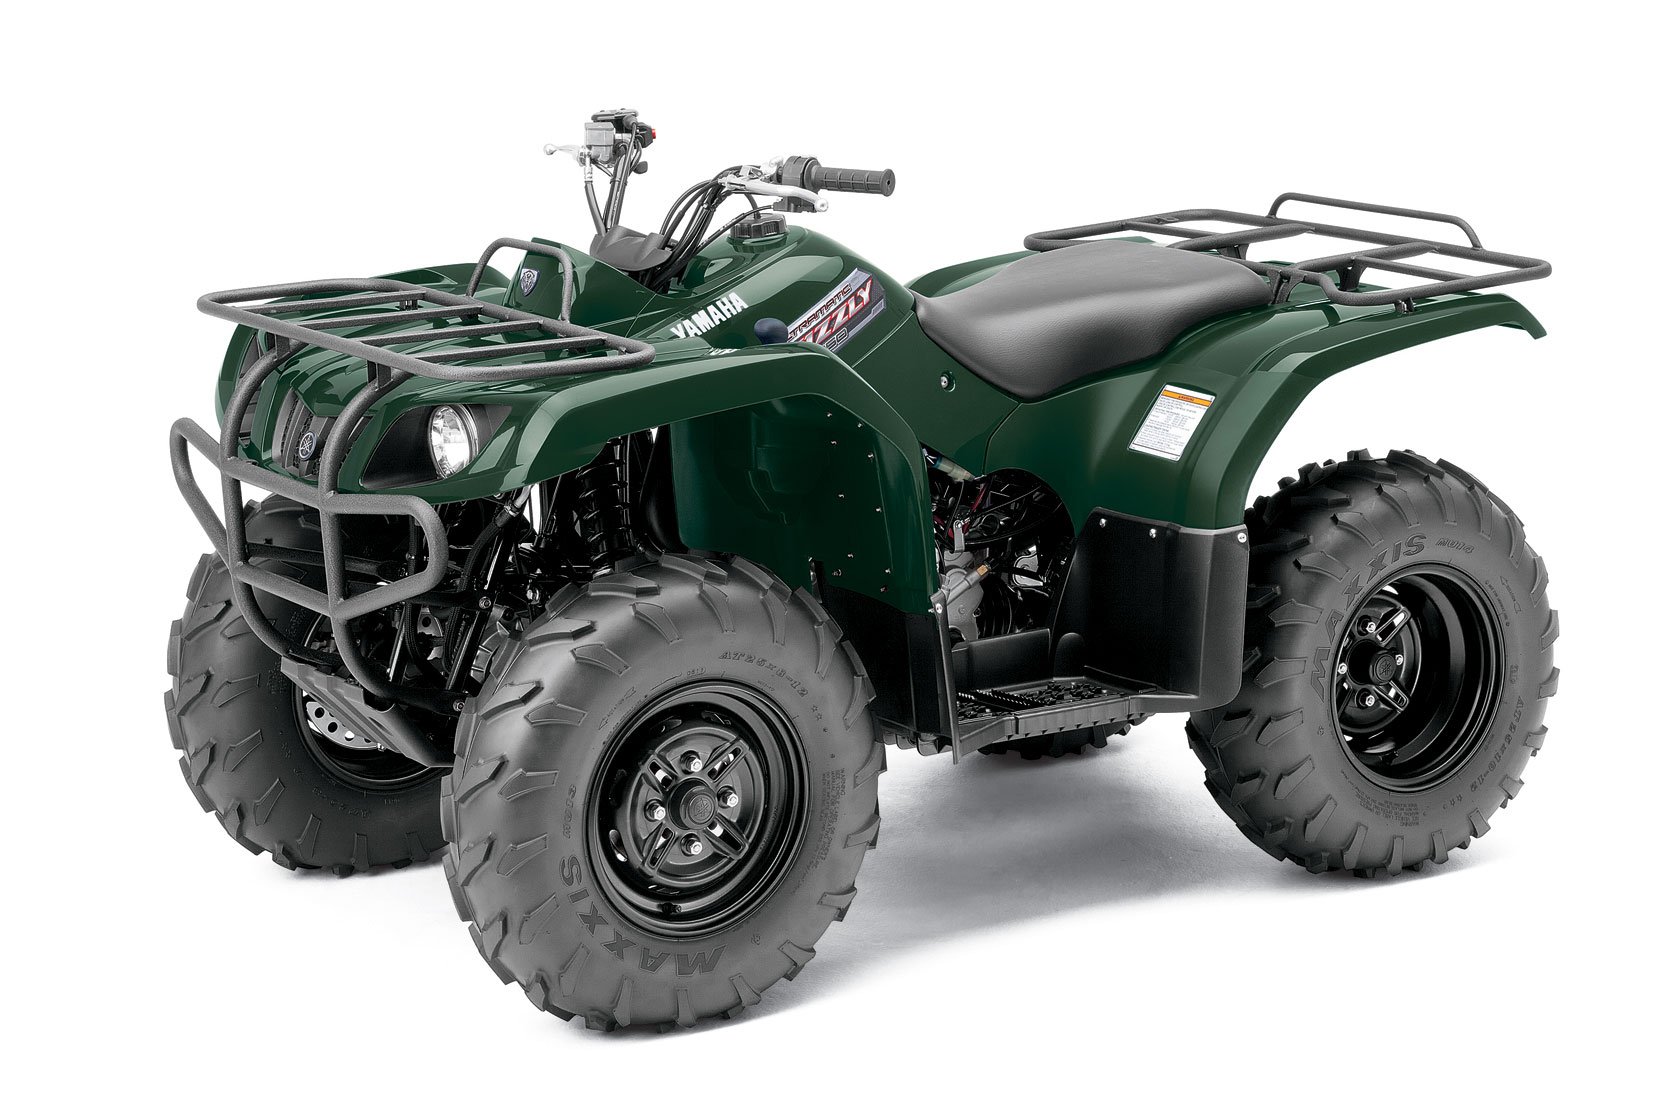 2012 yamaha grizzly 350 auto 4x4 review. Black Bedroom Furniture Sets. Home Design Ideas